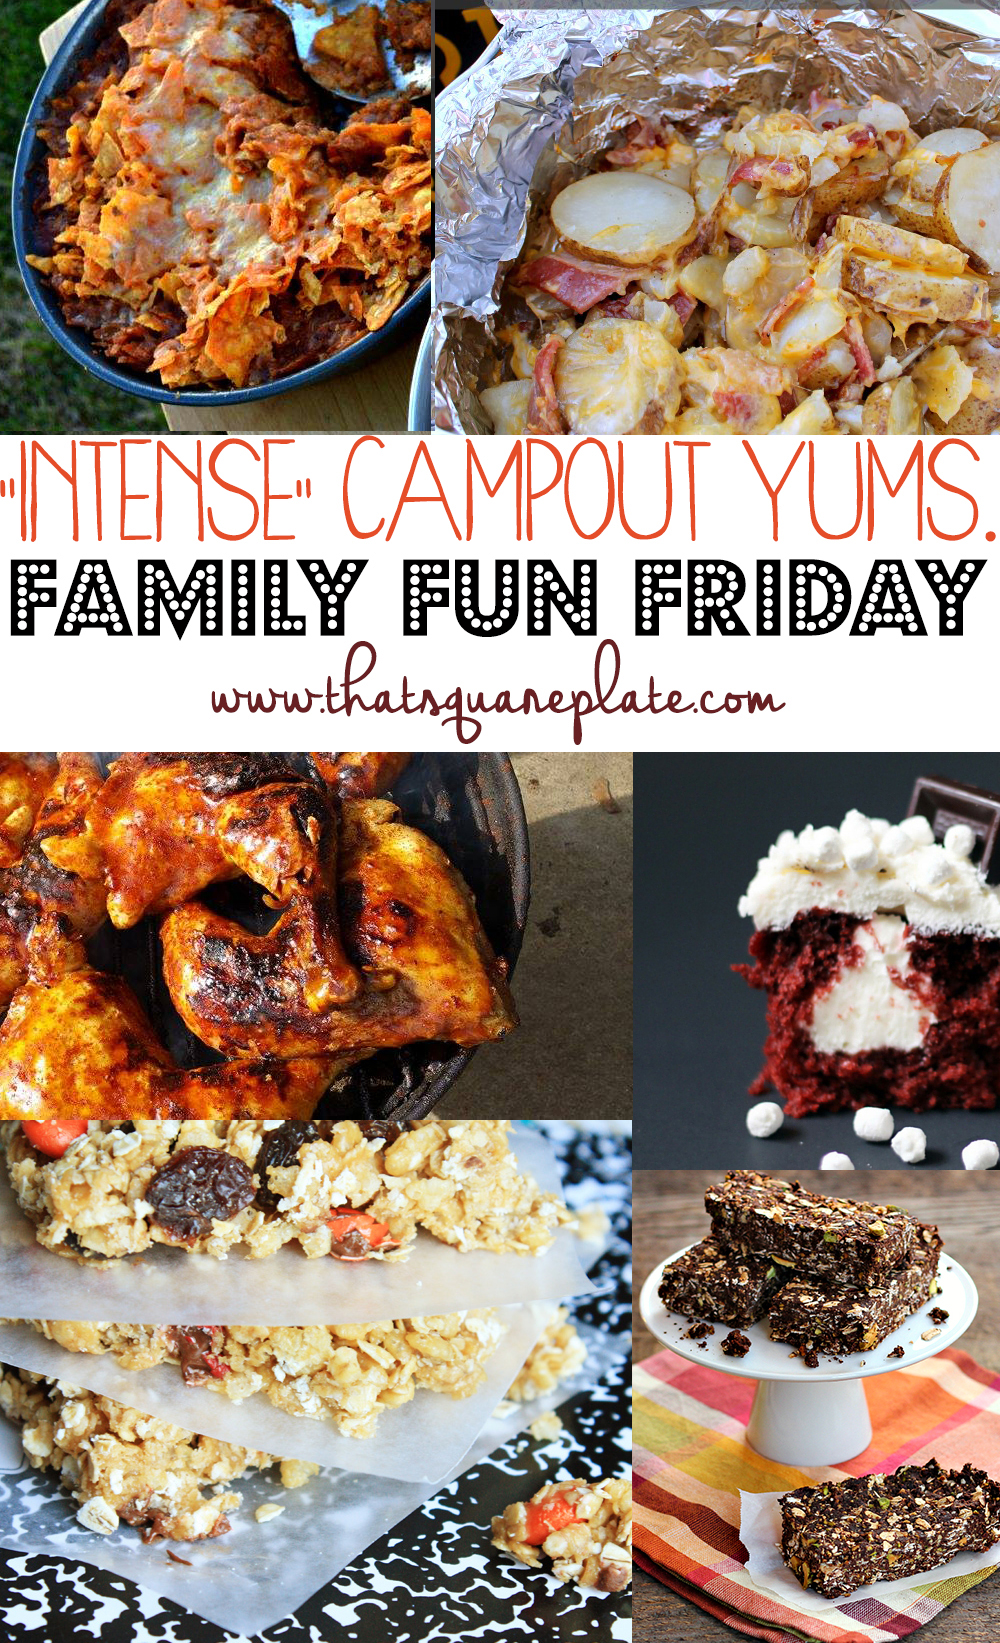 Intense Campout Yums Family Fun Friday